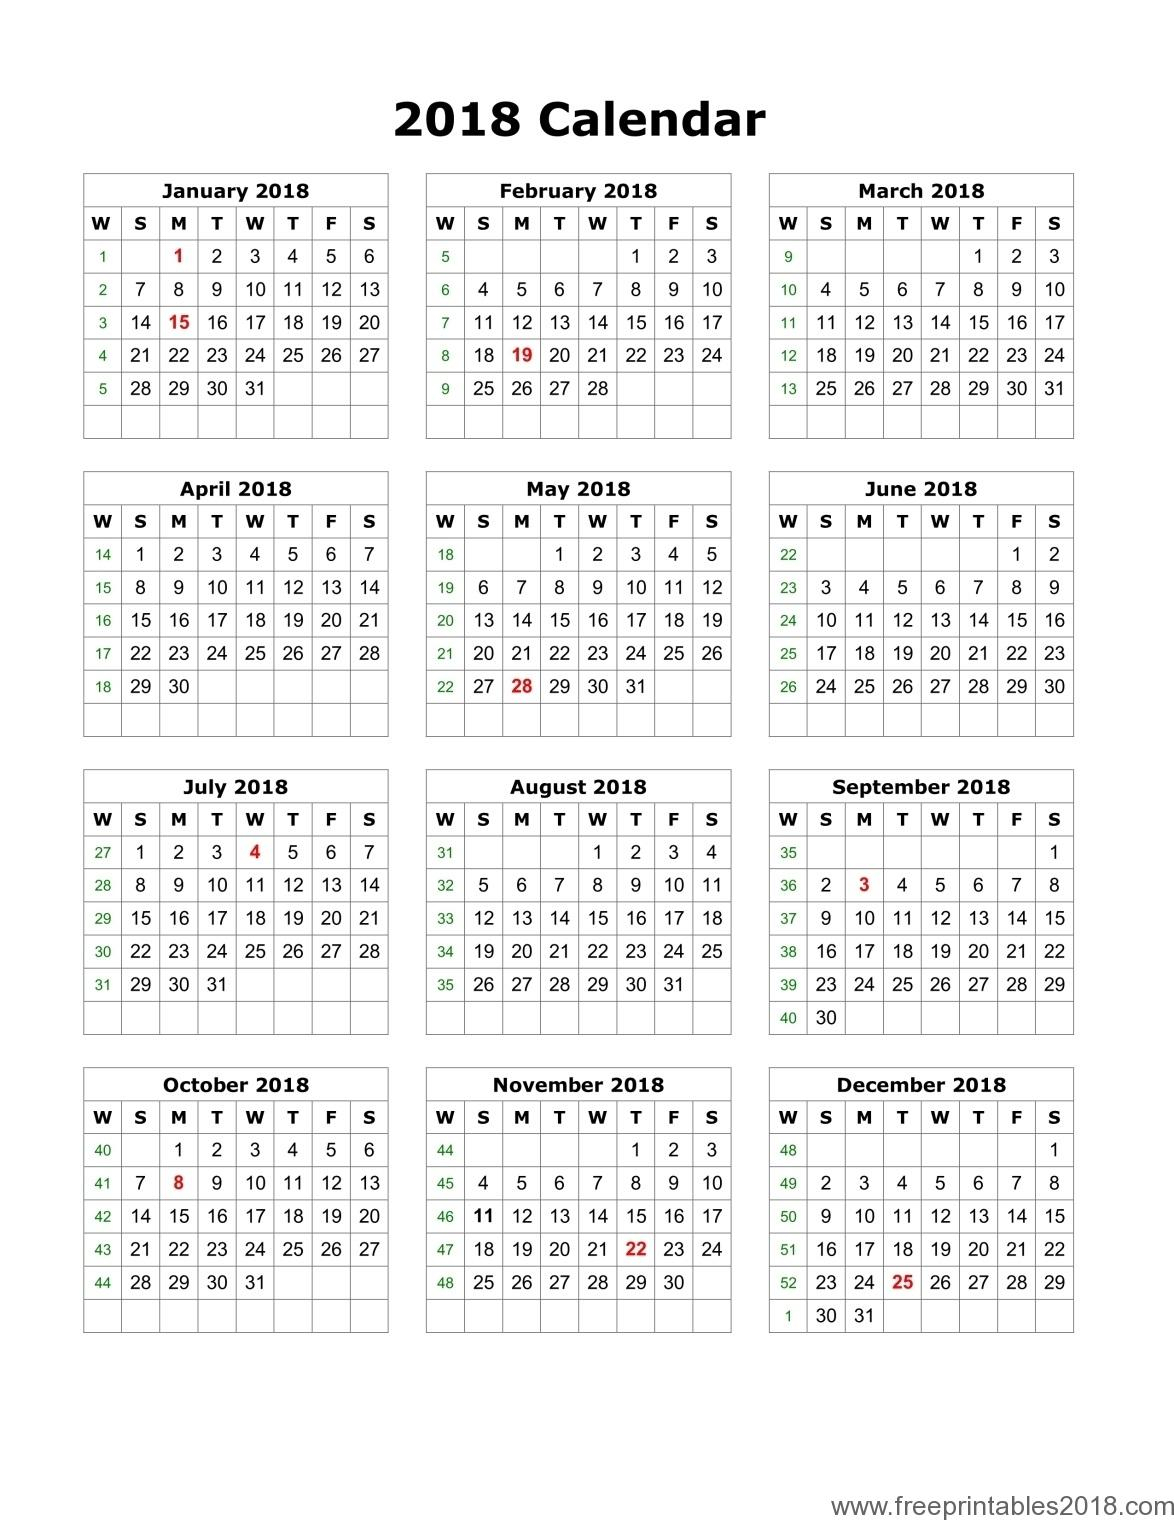 Free Printable Blank Calendar 2018 | Free Printables 2019 within Free Printable Blank Calendar August-December